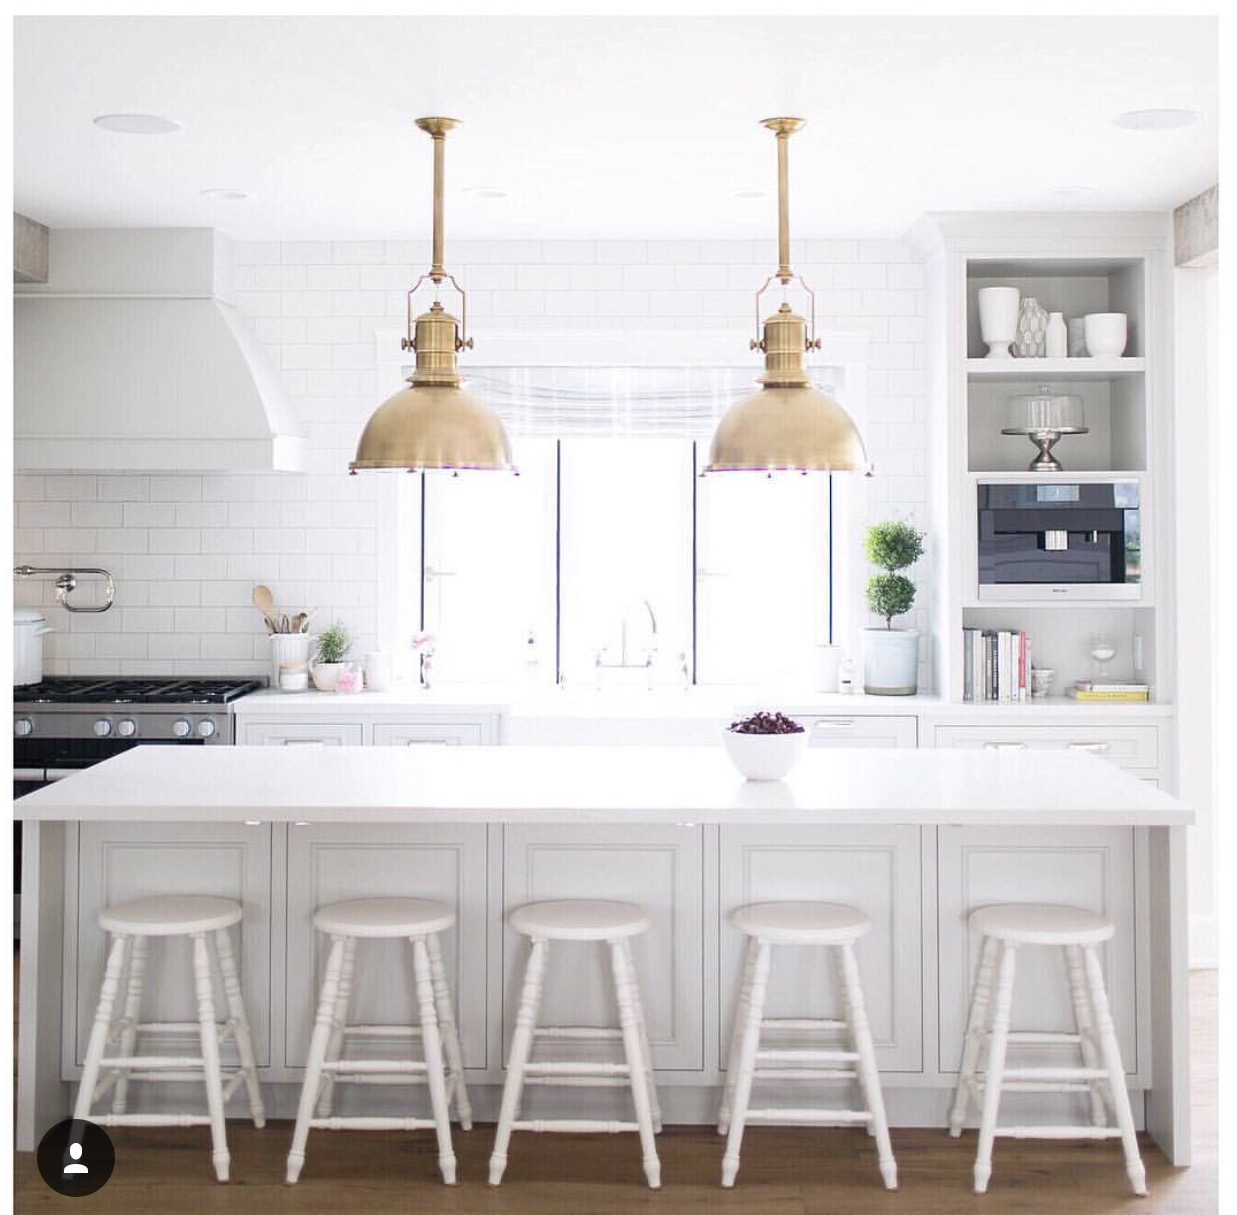 Instagram @jillian.harris